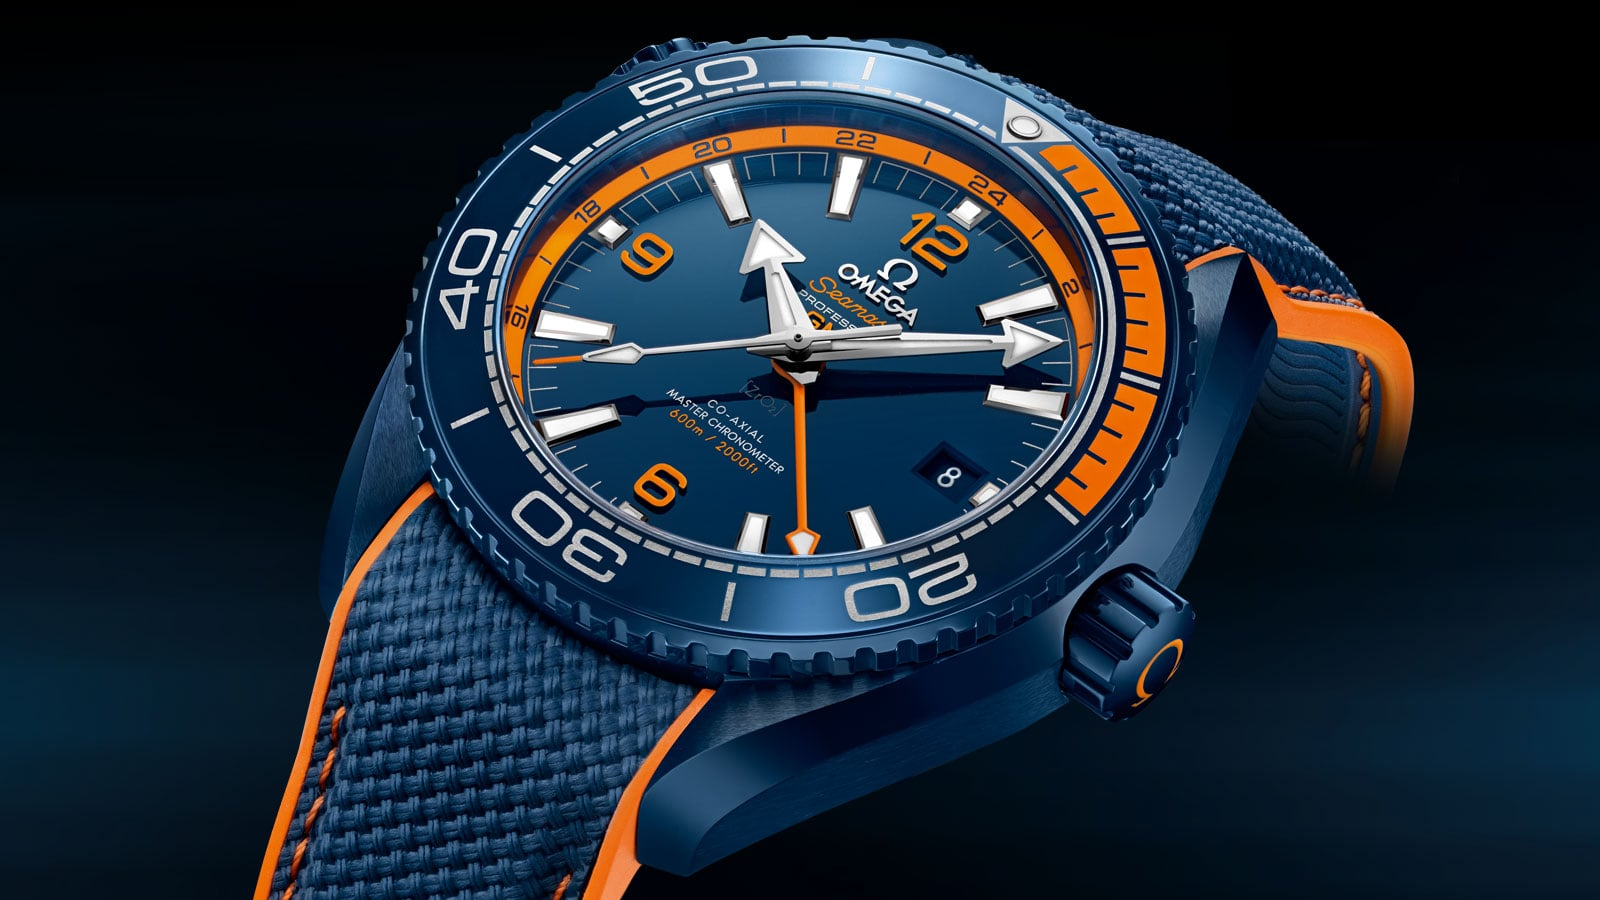 Close-up shot of the Diver 600M Big Blue dial. The hands and indexes are coated with Super-LumiNova.